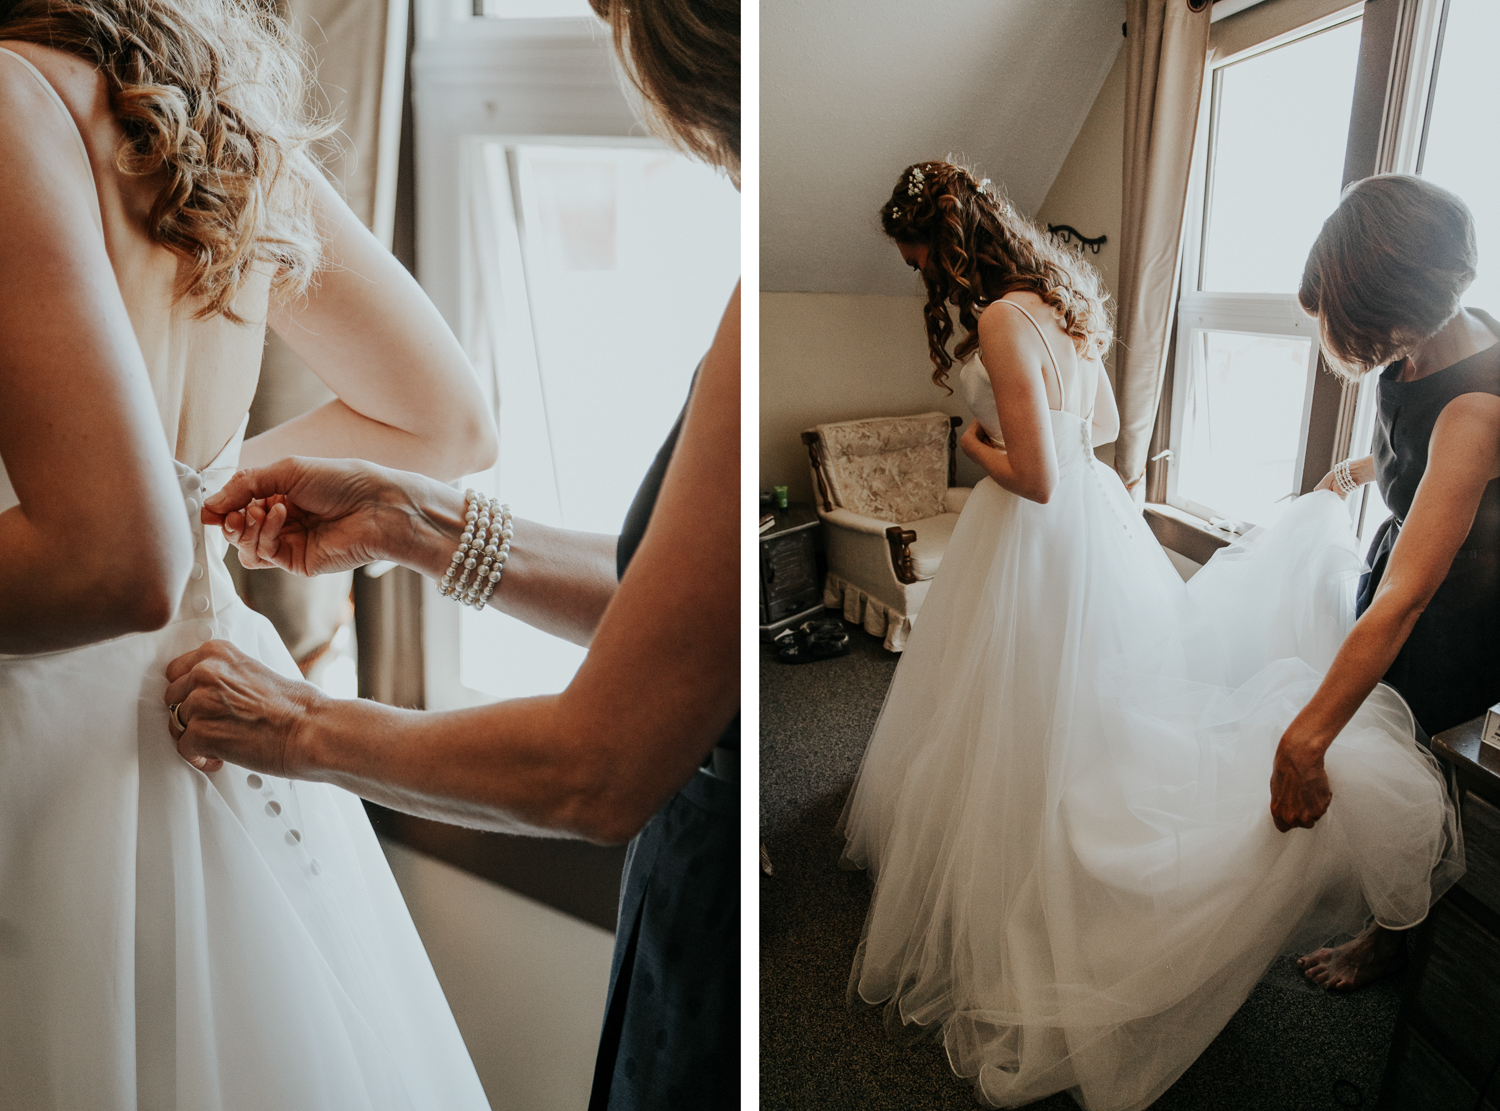 lethbridge-wedding-photographer-love-and-be-loved-photography-dan-tynnea-picture-image-photo-131.jpg